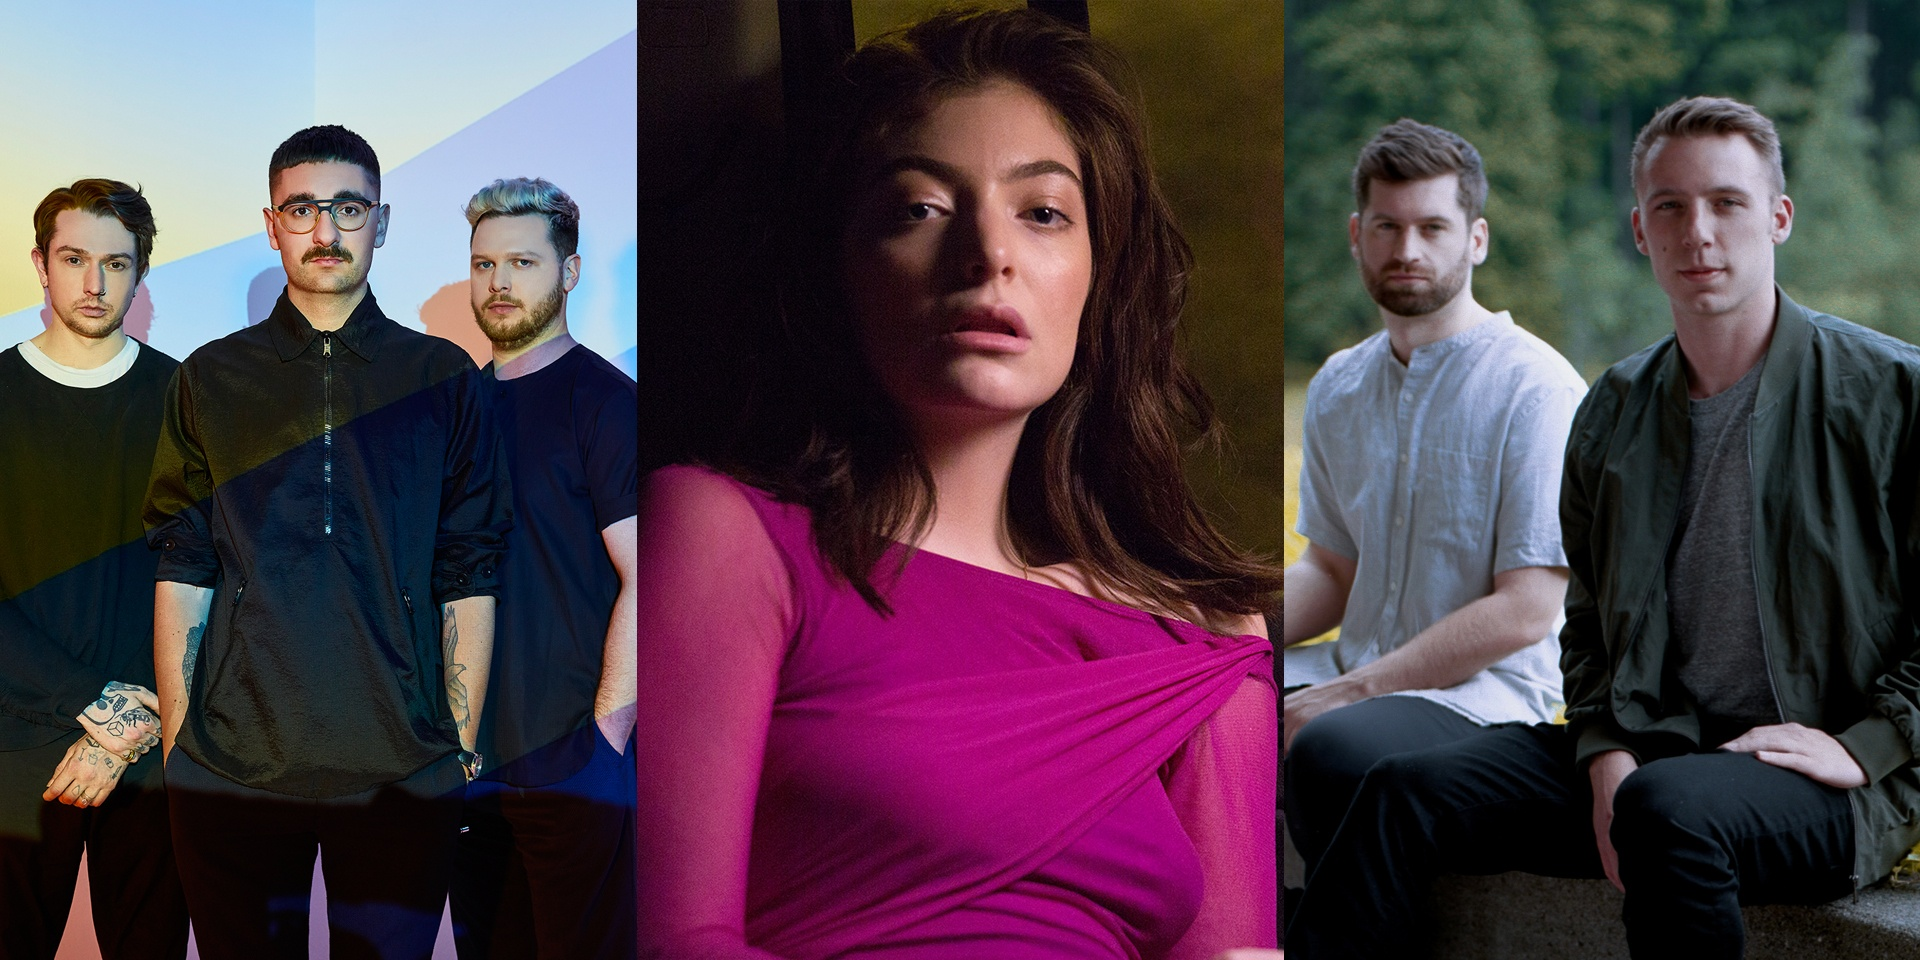 Lorde, alt-J and Odesza lead the international acts in We The Fest's phase 1 line-up announcement